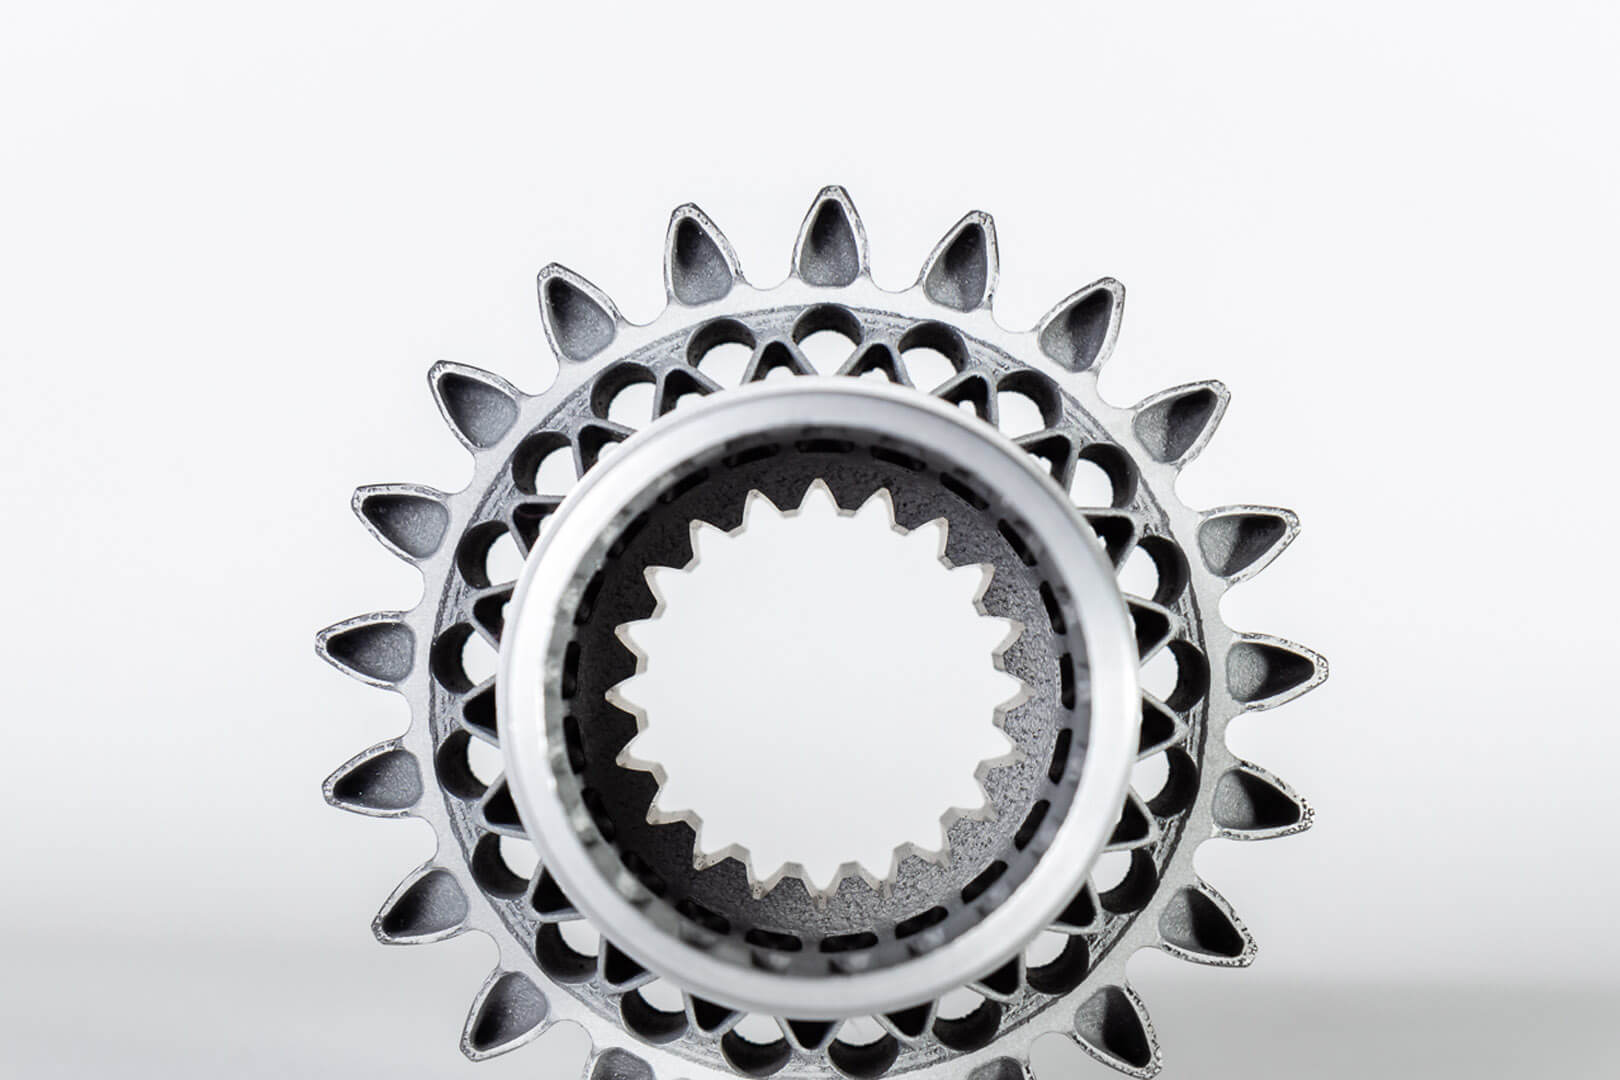 Additive-Manufacturing_Hero-Image